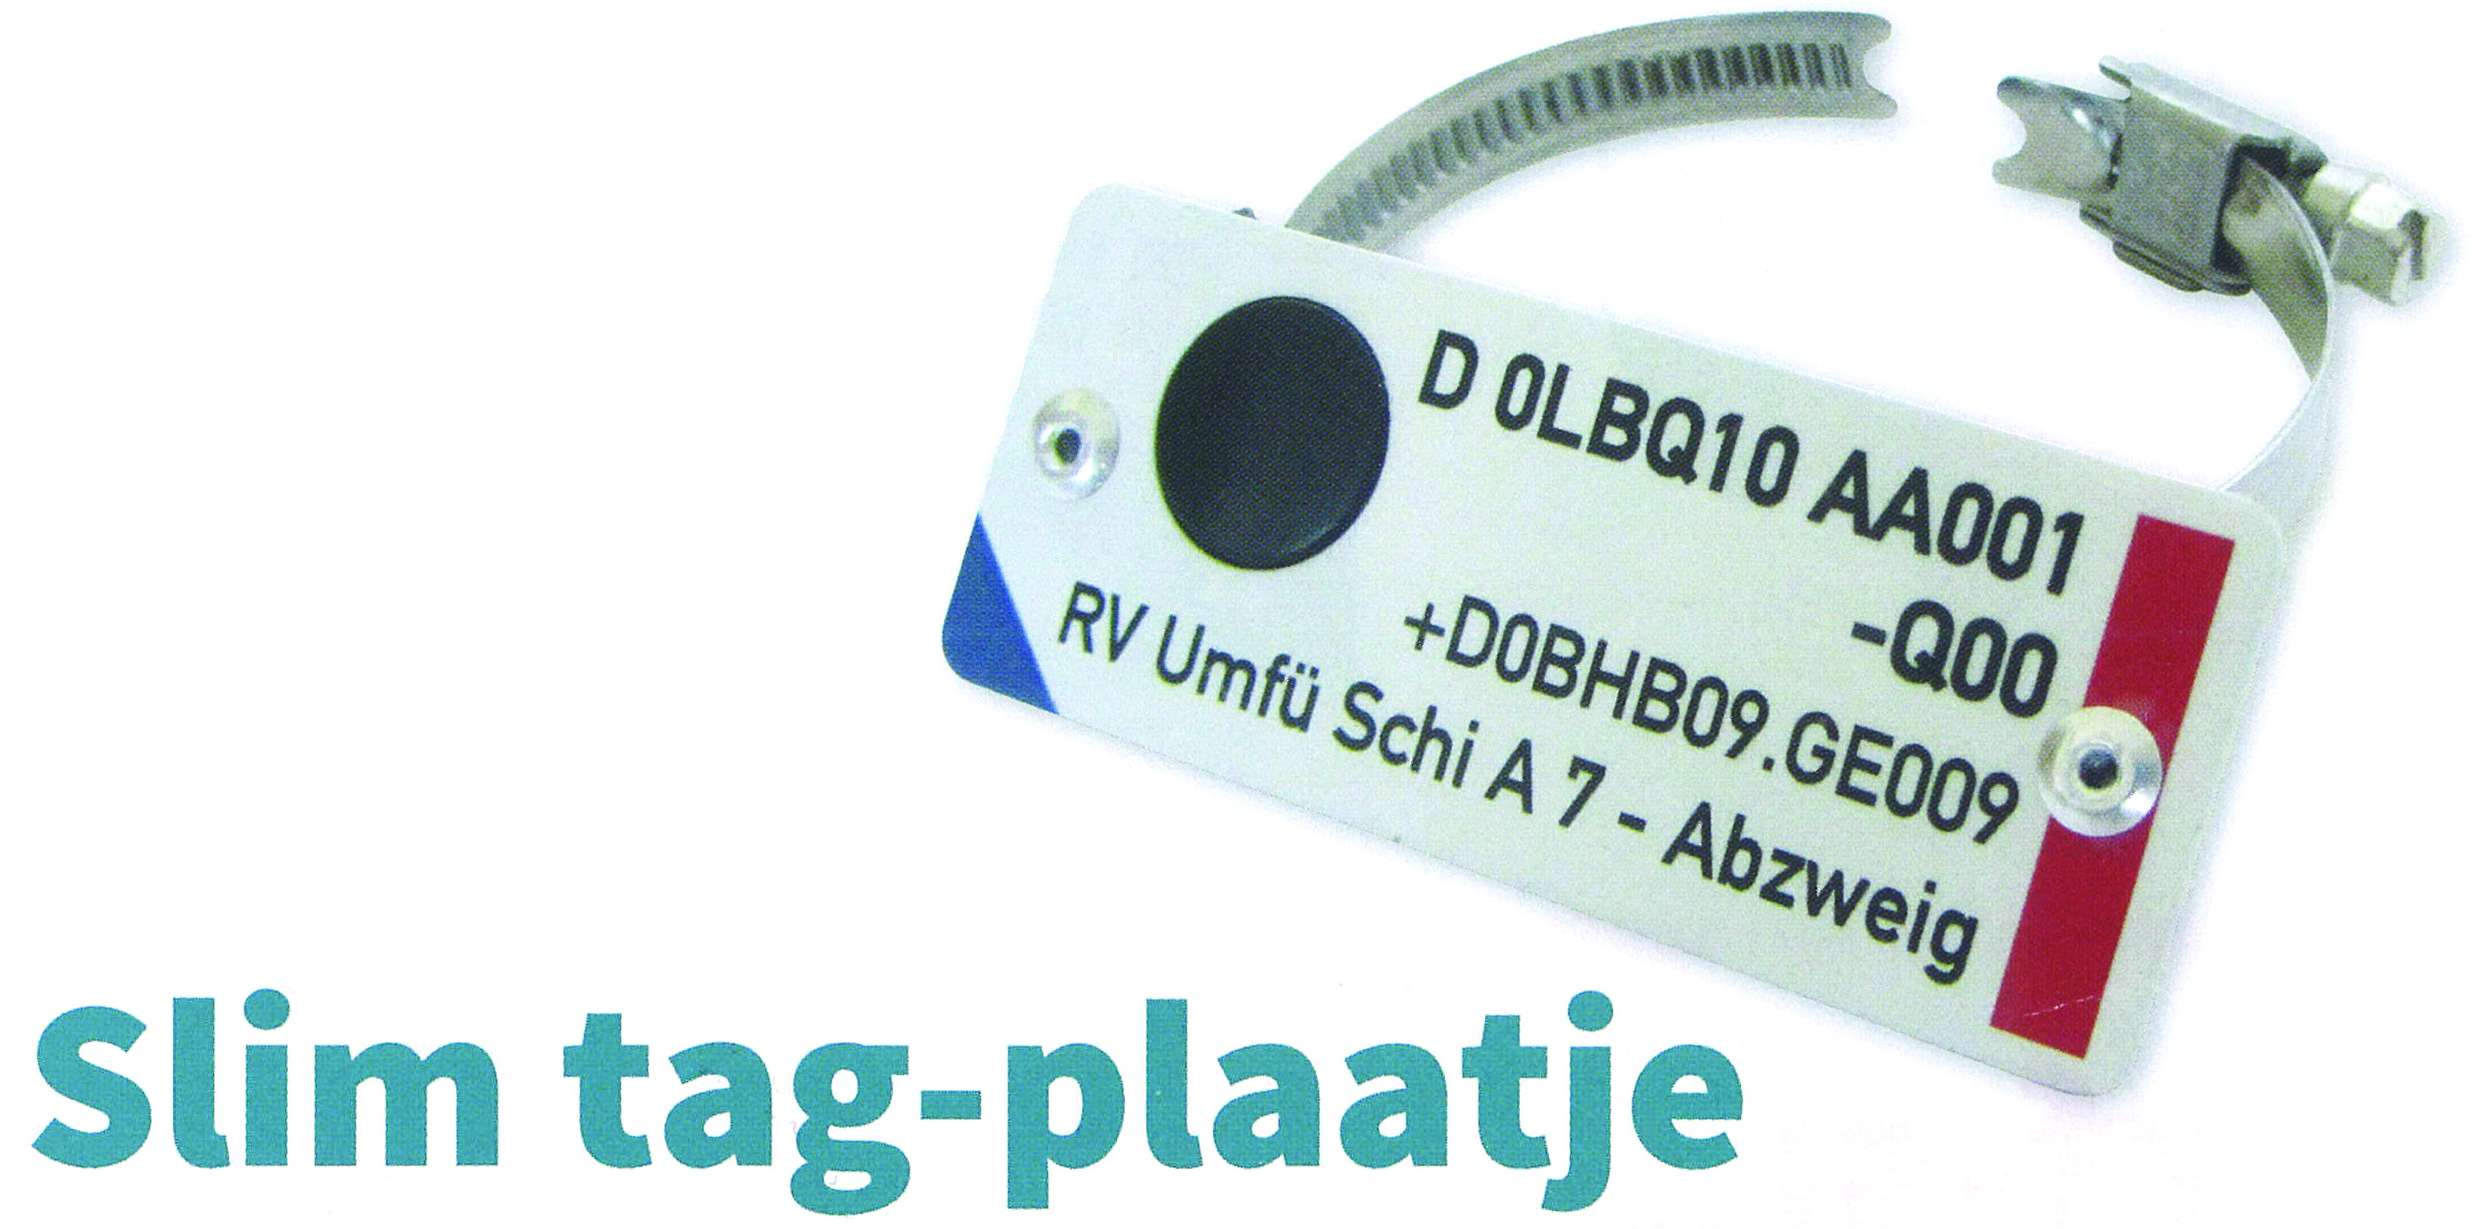 A Signs and Safety - Slim tag-plaatje